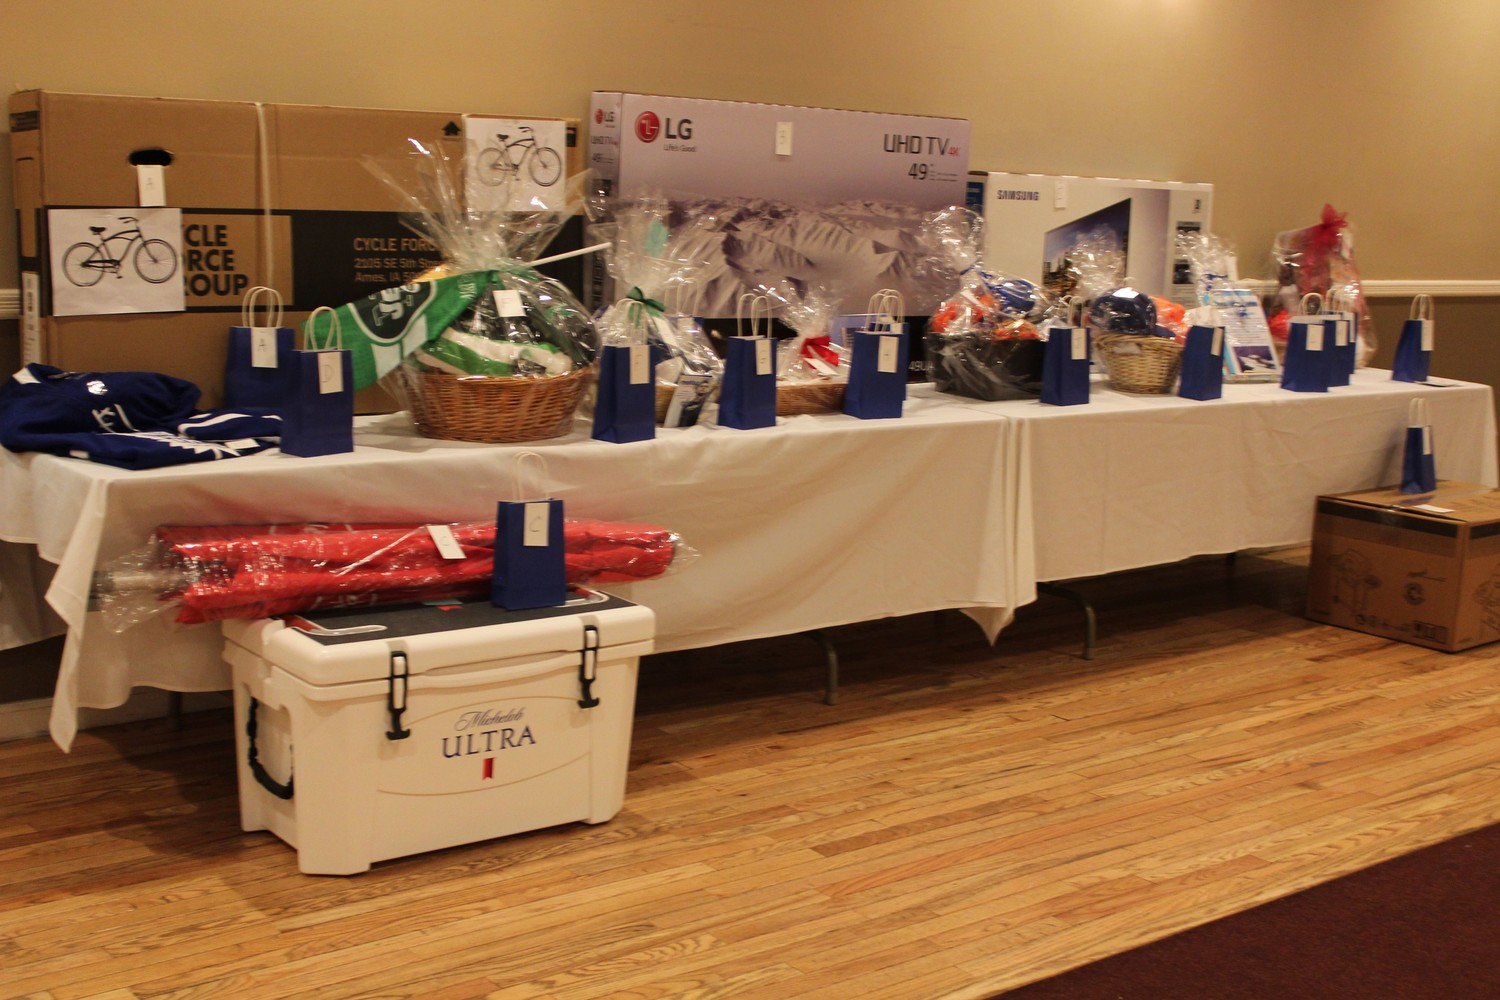 More than 70 gift baskets and other raffle prizes were donated by local businesses at the fundraiser.